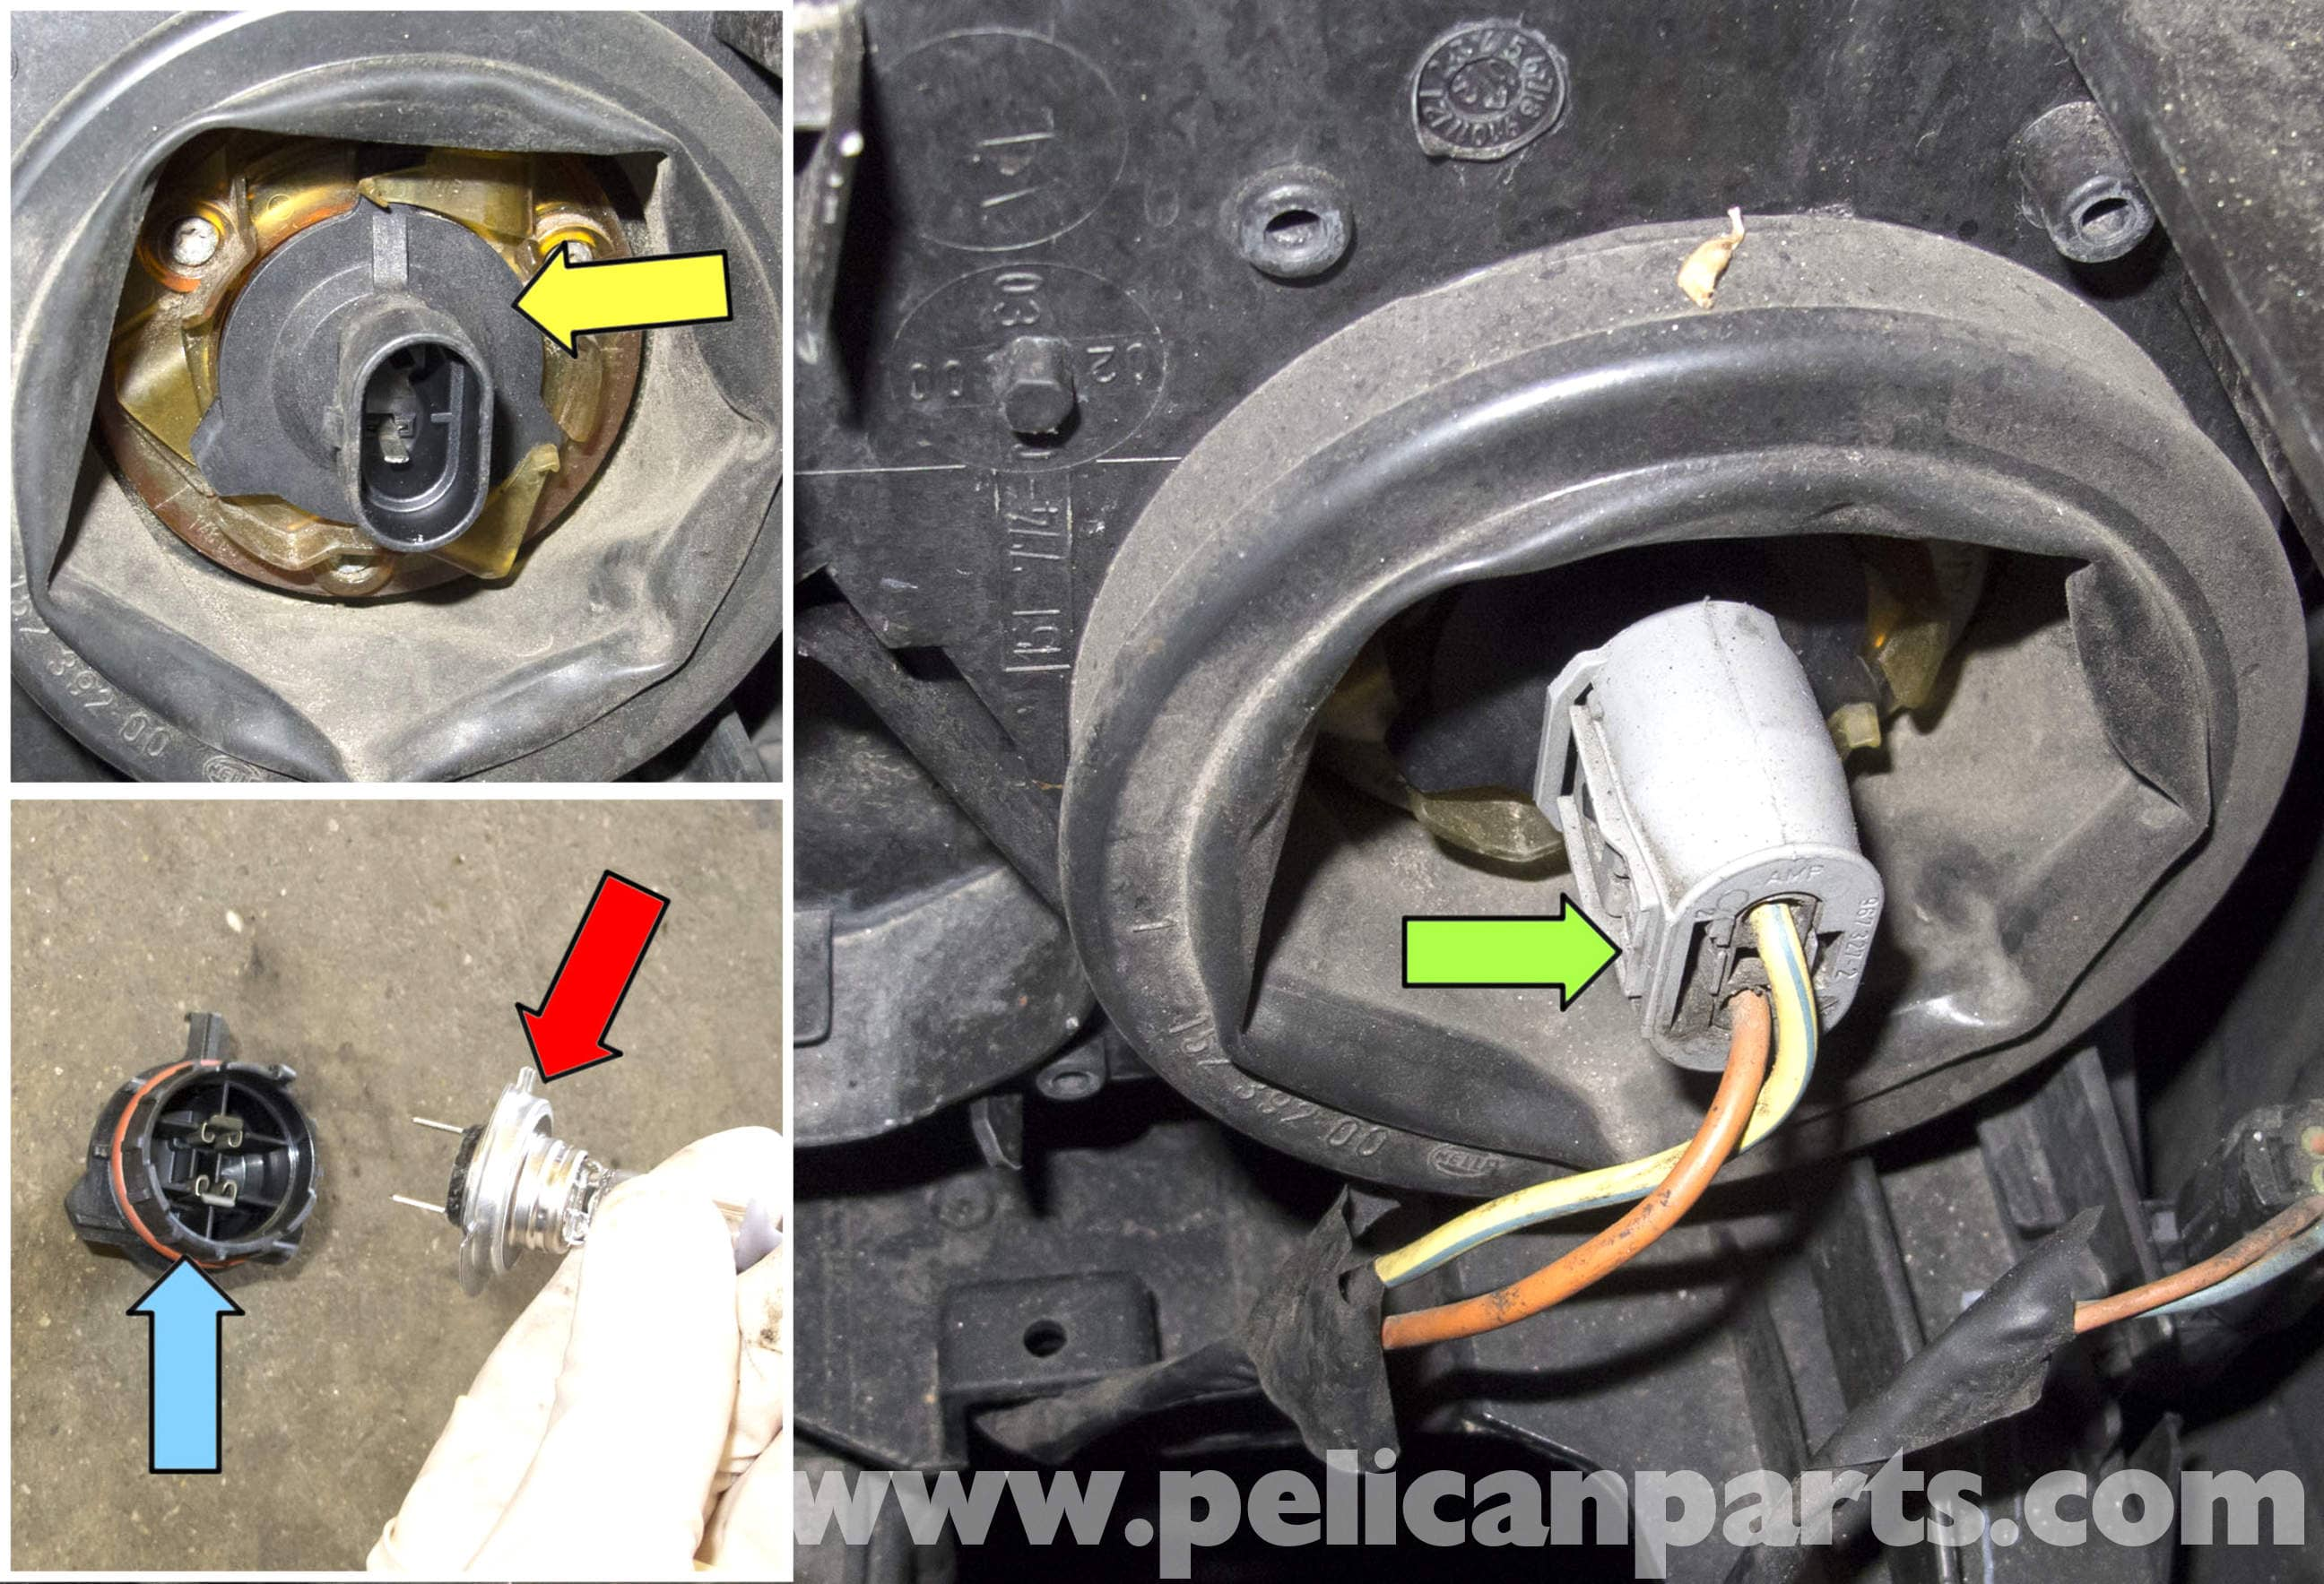 Bmw X5 Headlight Replacement E53 2000 2006 Pelican Parts Diy Emergency Battery Cutoff Alternator Protection Large Image Extra